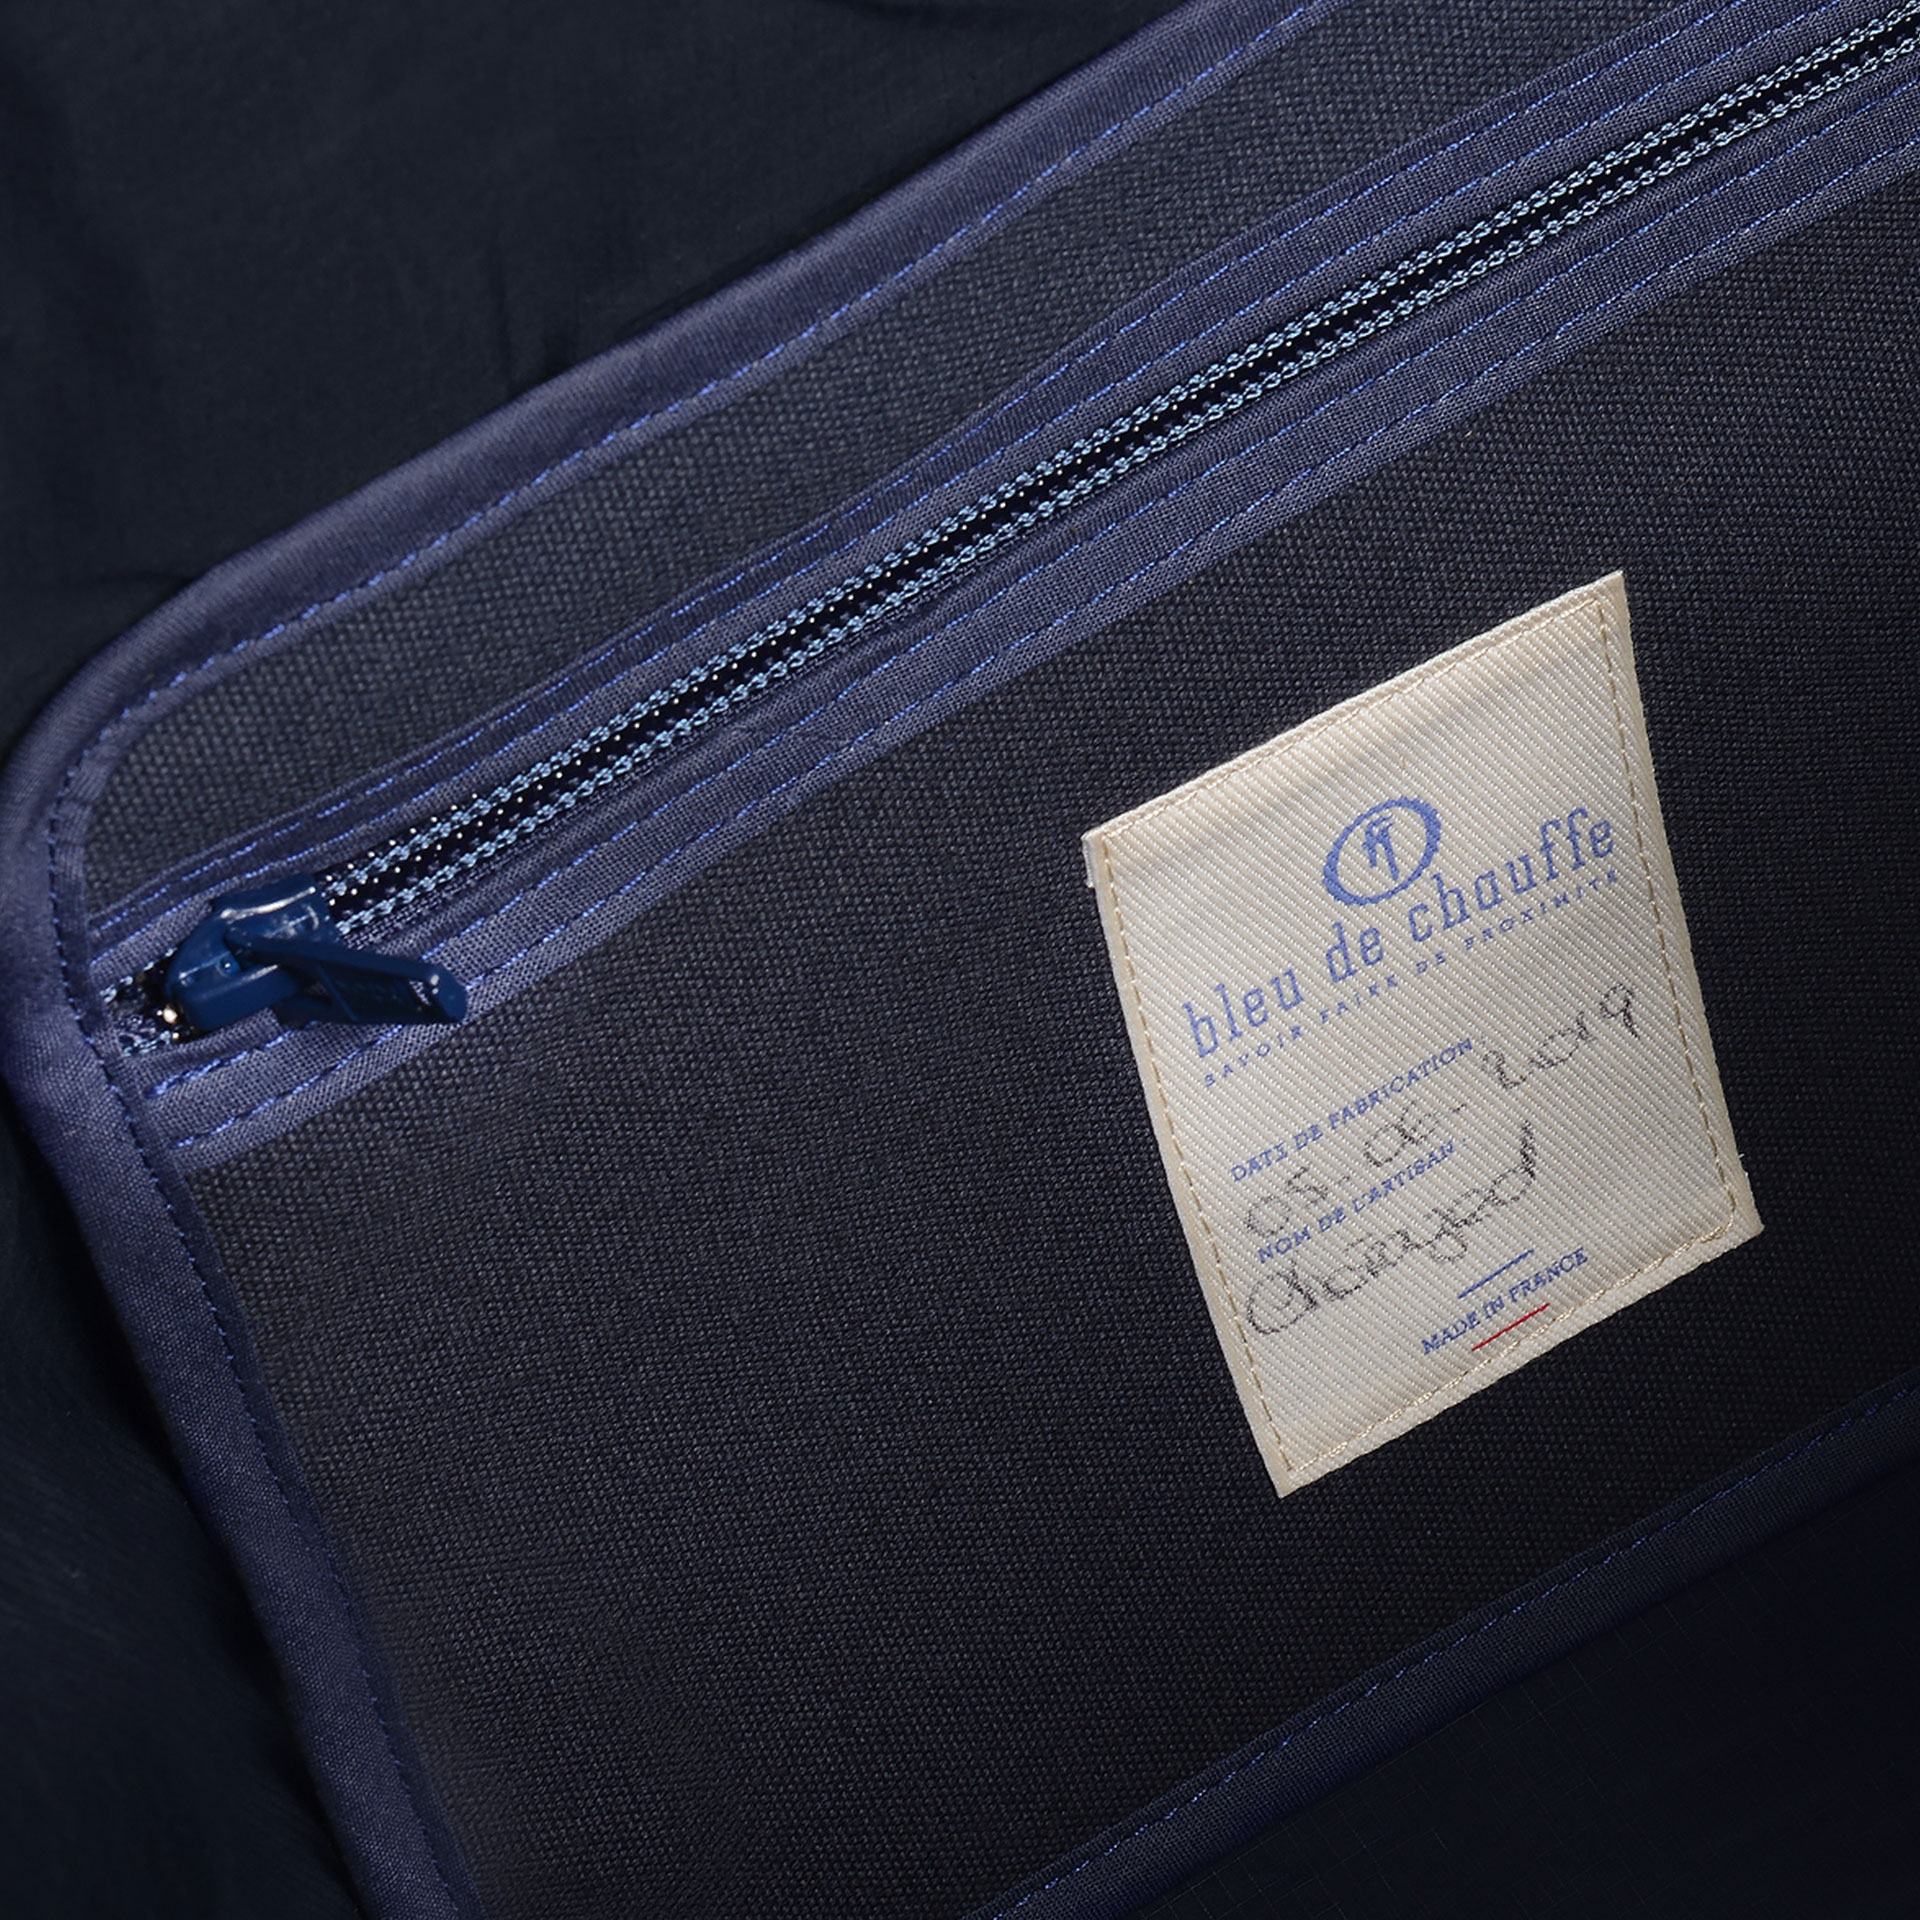 35L Baroud Travel bag - Hague Blue (image n°4)